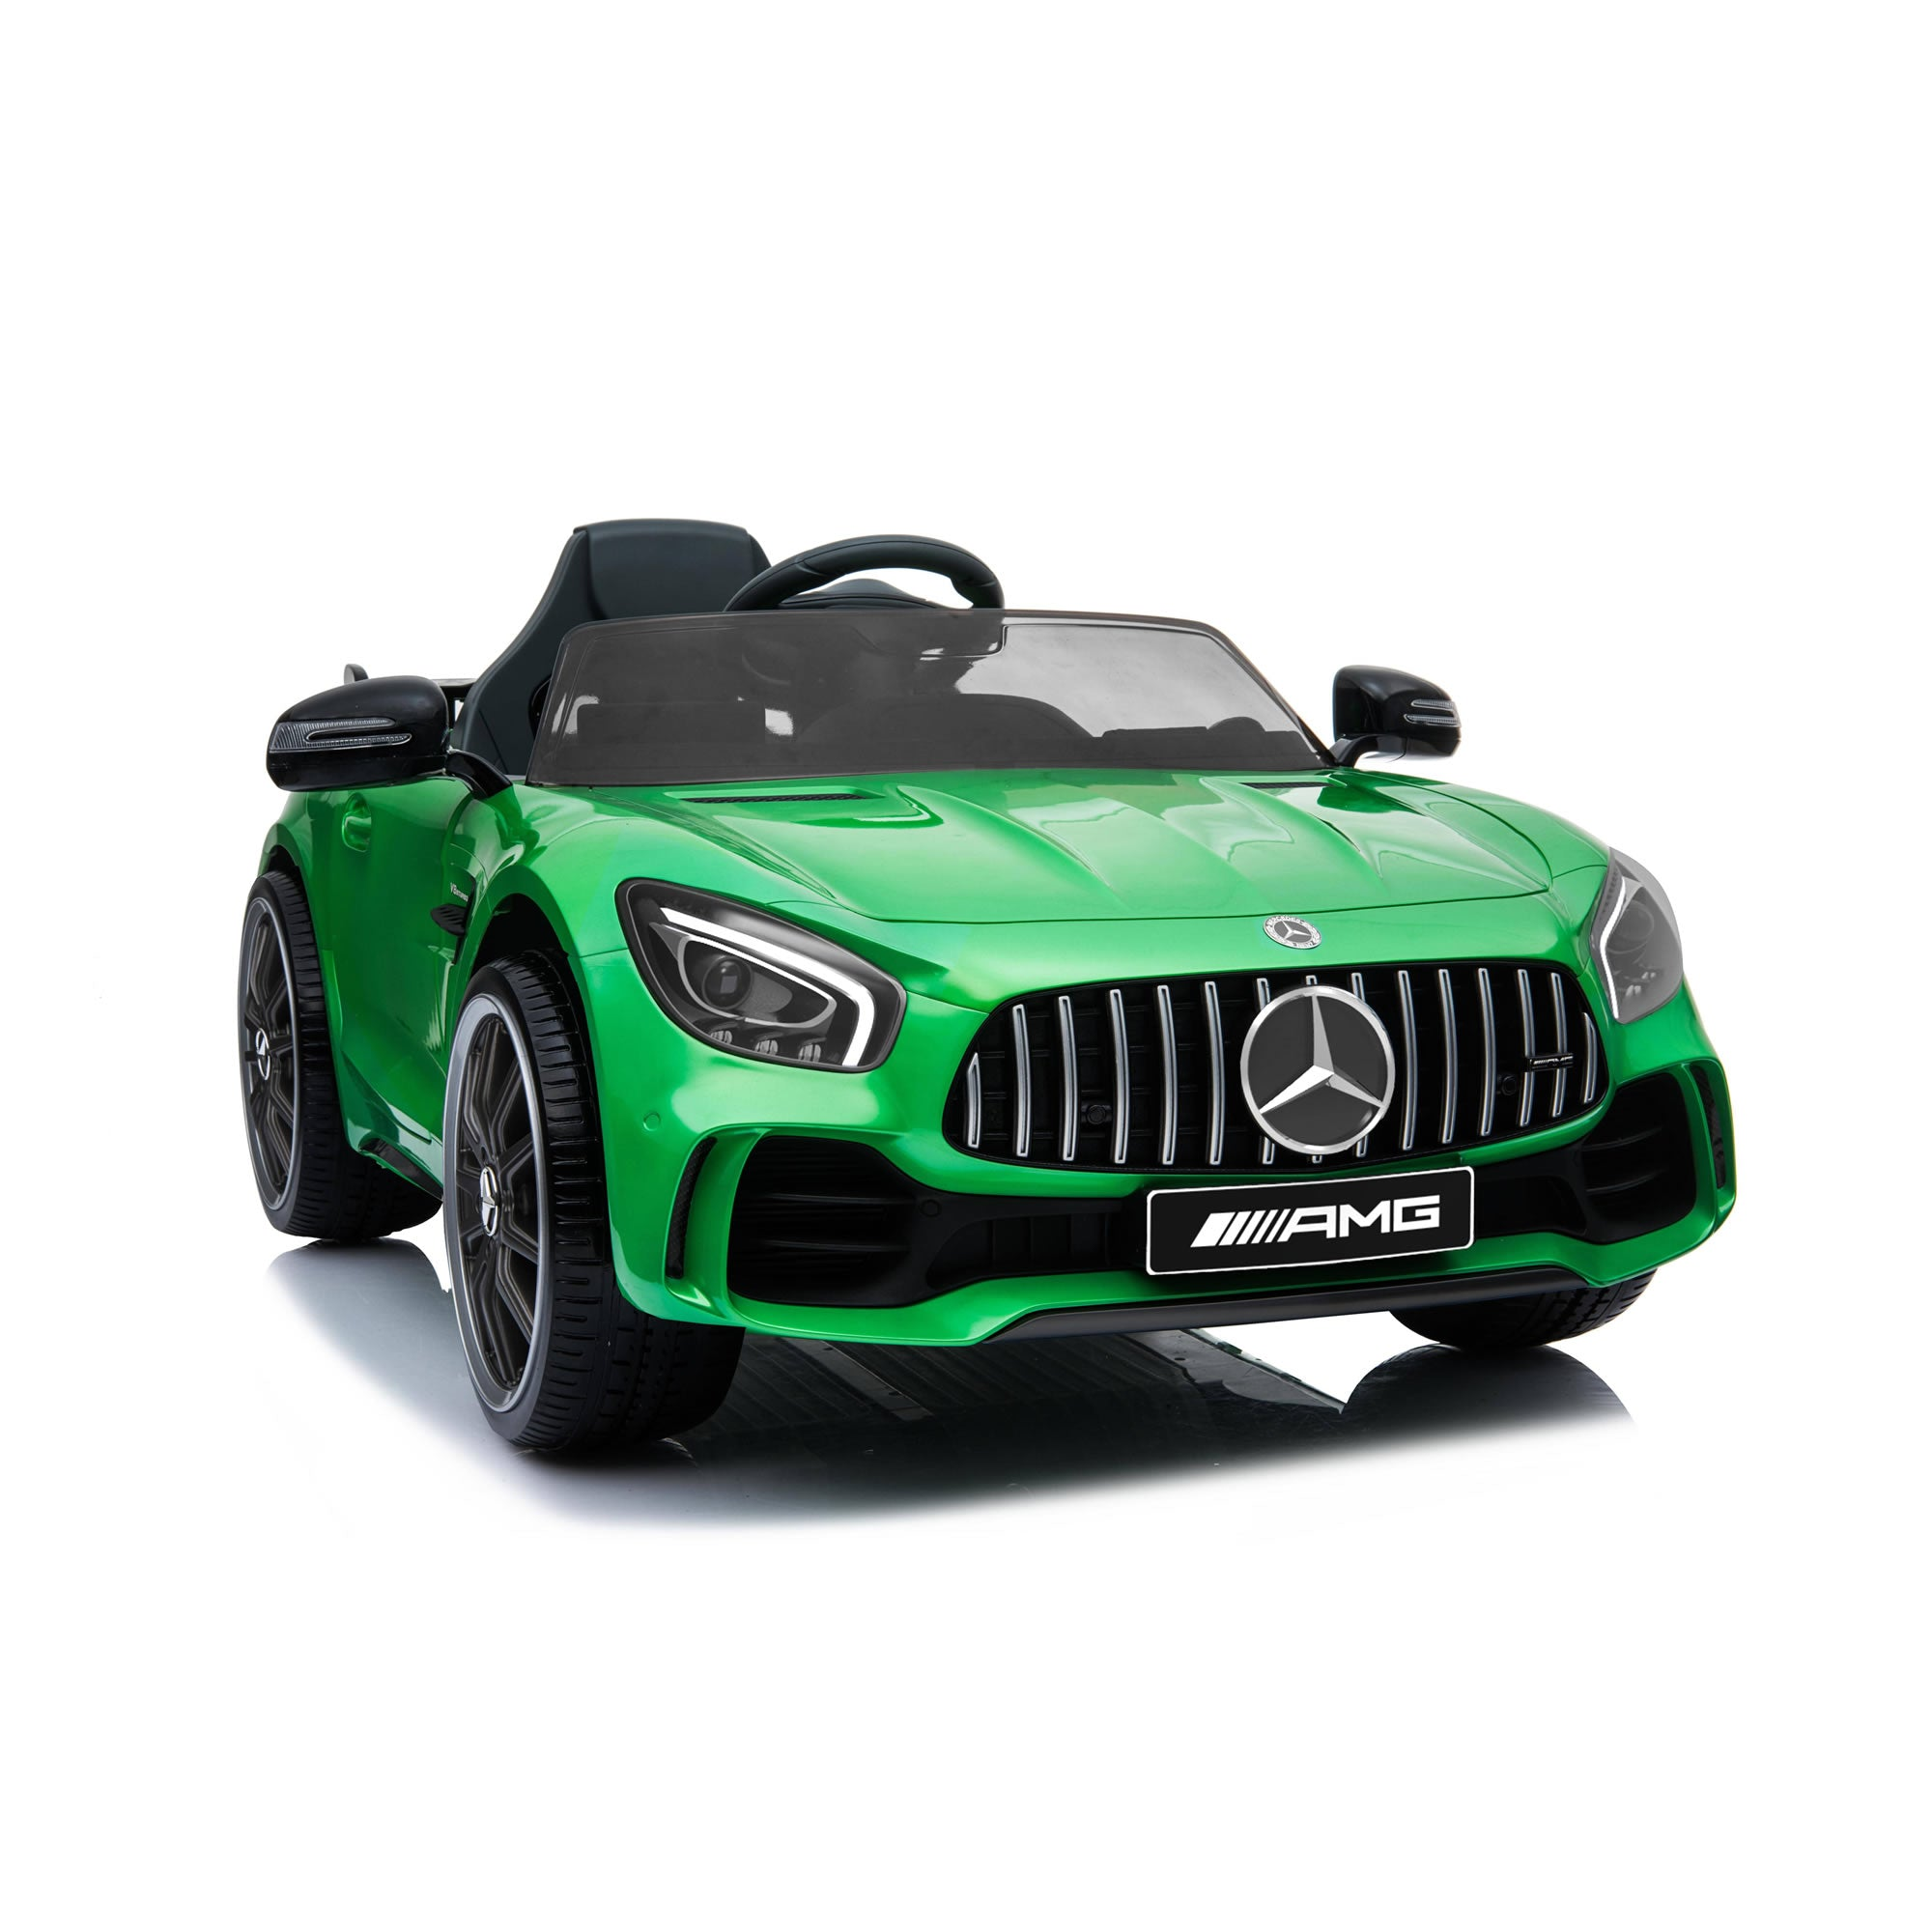 Licensed Mercedes Benz GTR 12v Kids Ride on Car - Green